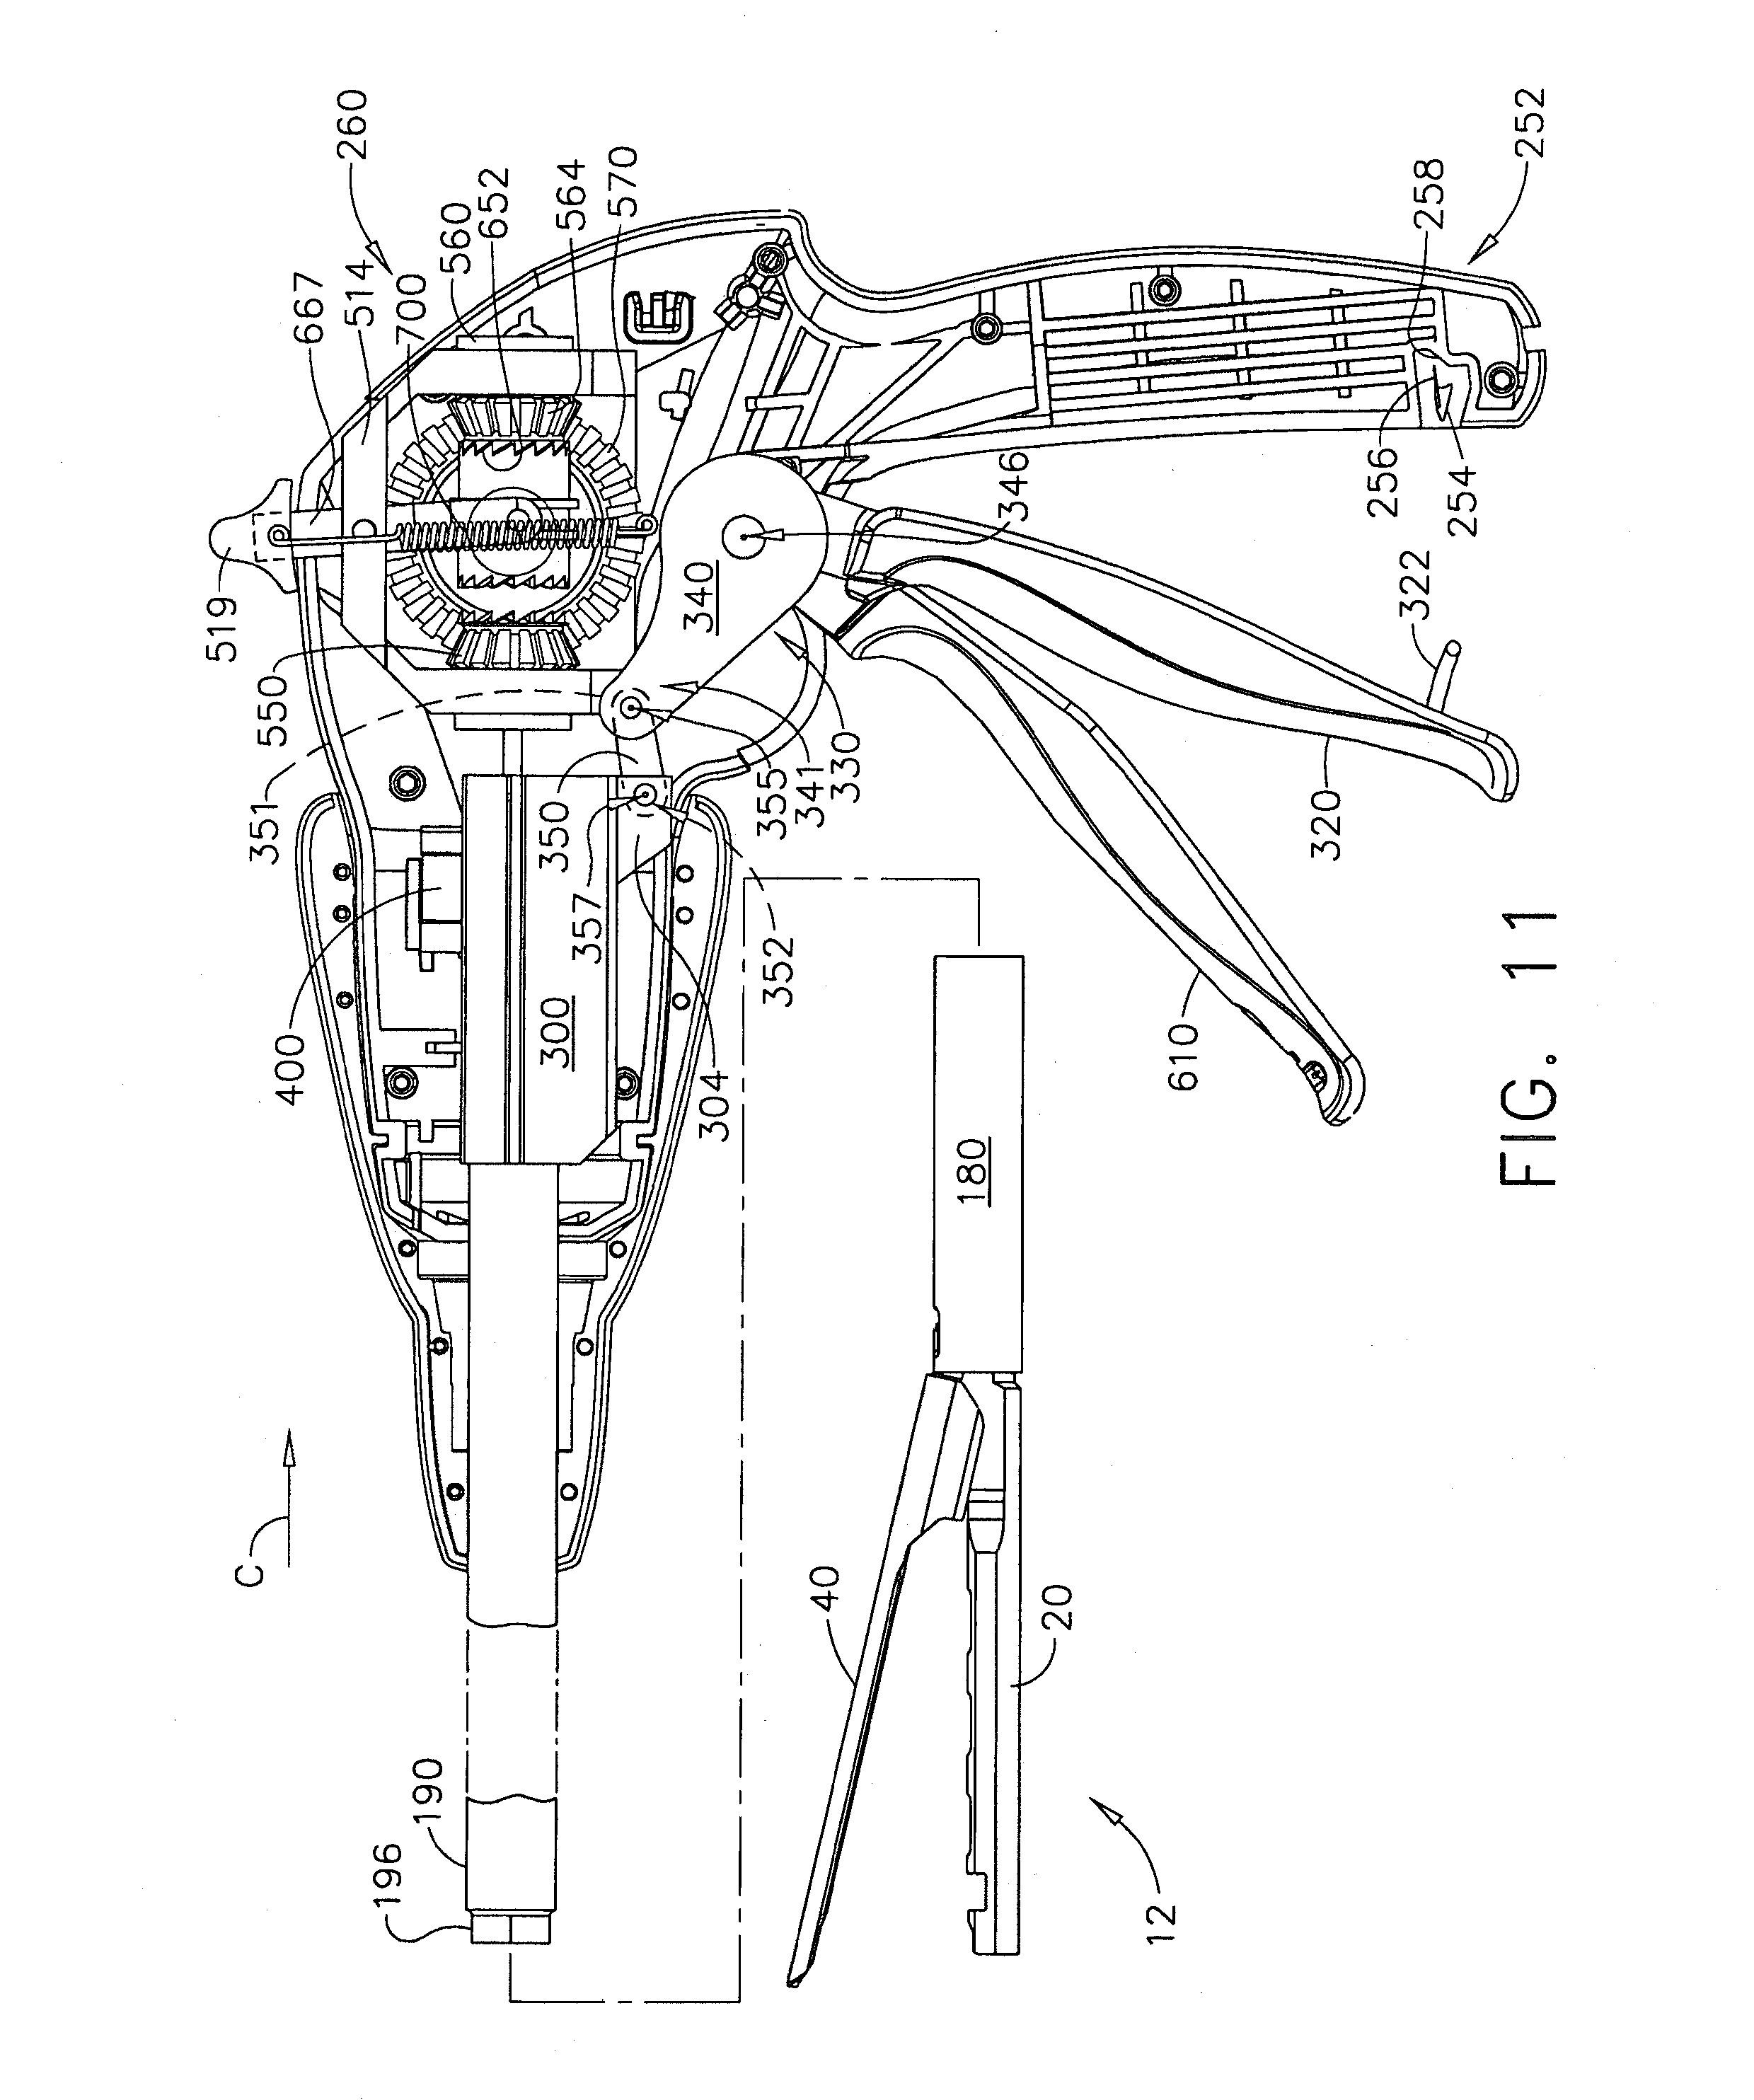 international 254 wiring diagram us20130048697a1 manually driven surgical cutting and fastening  manually driven surgical cutting and